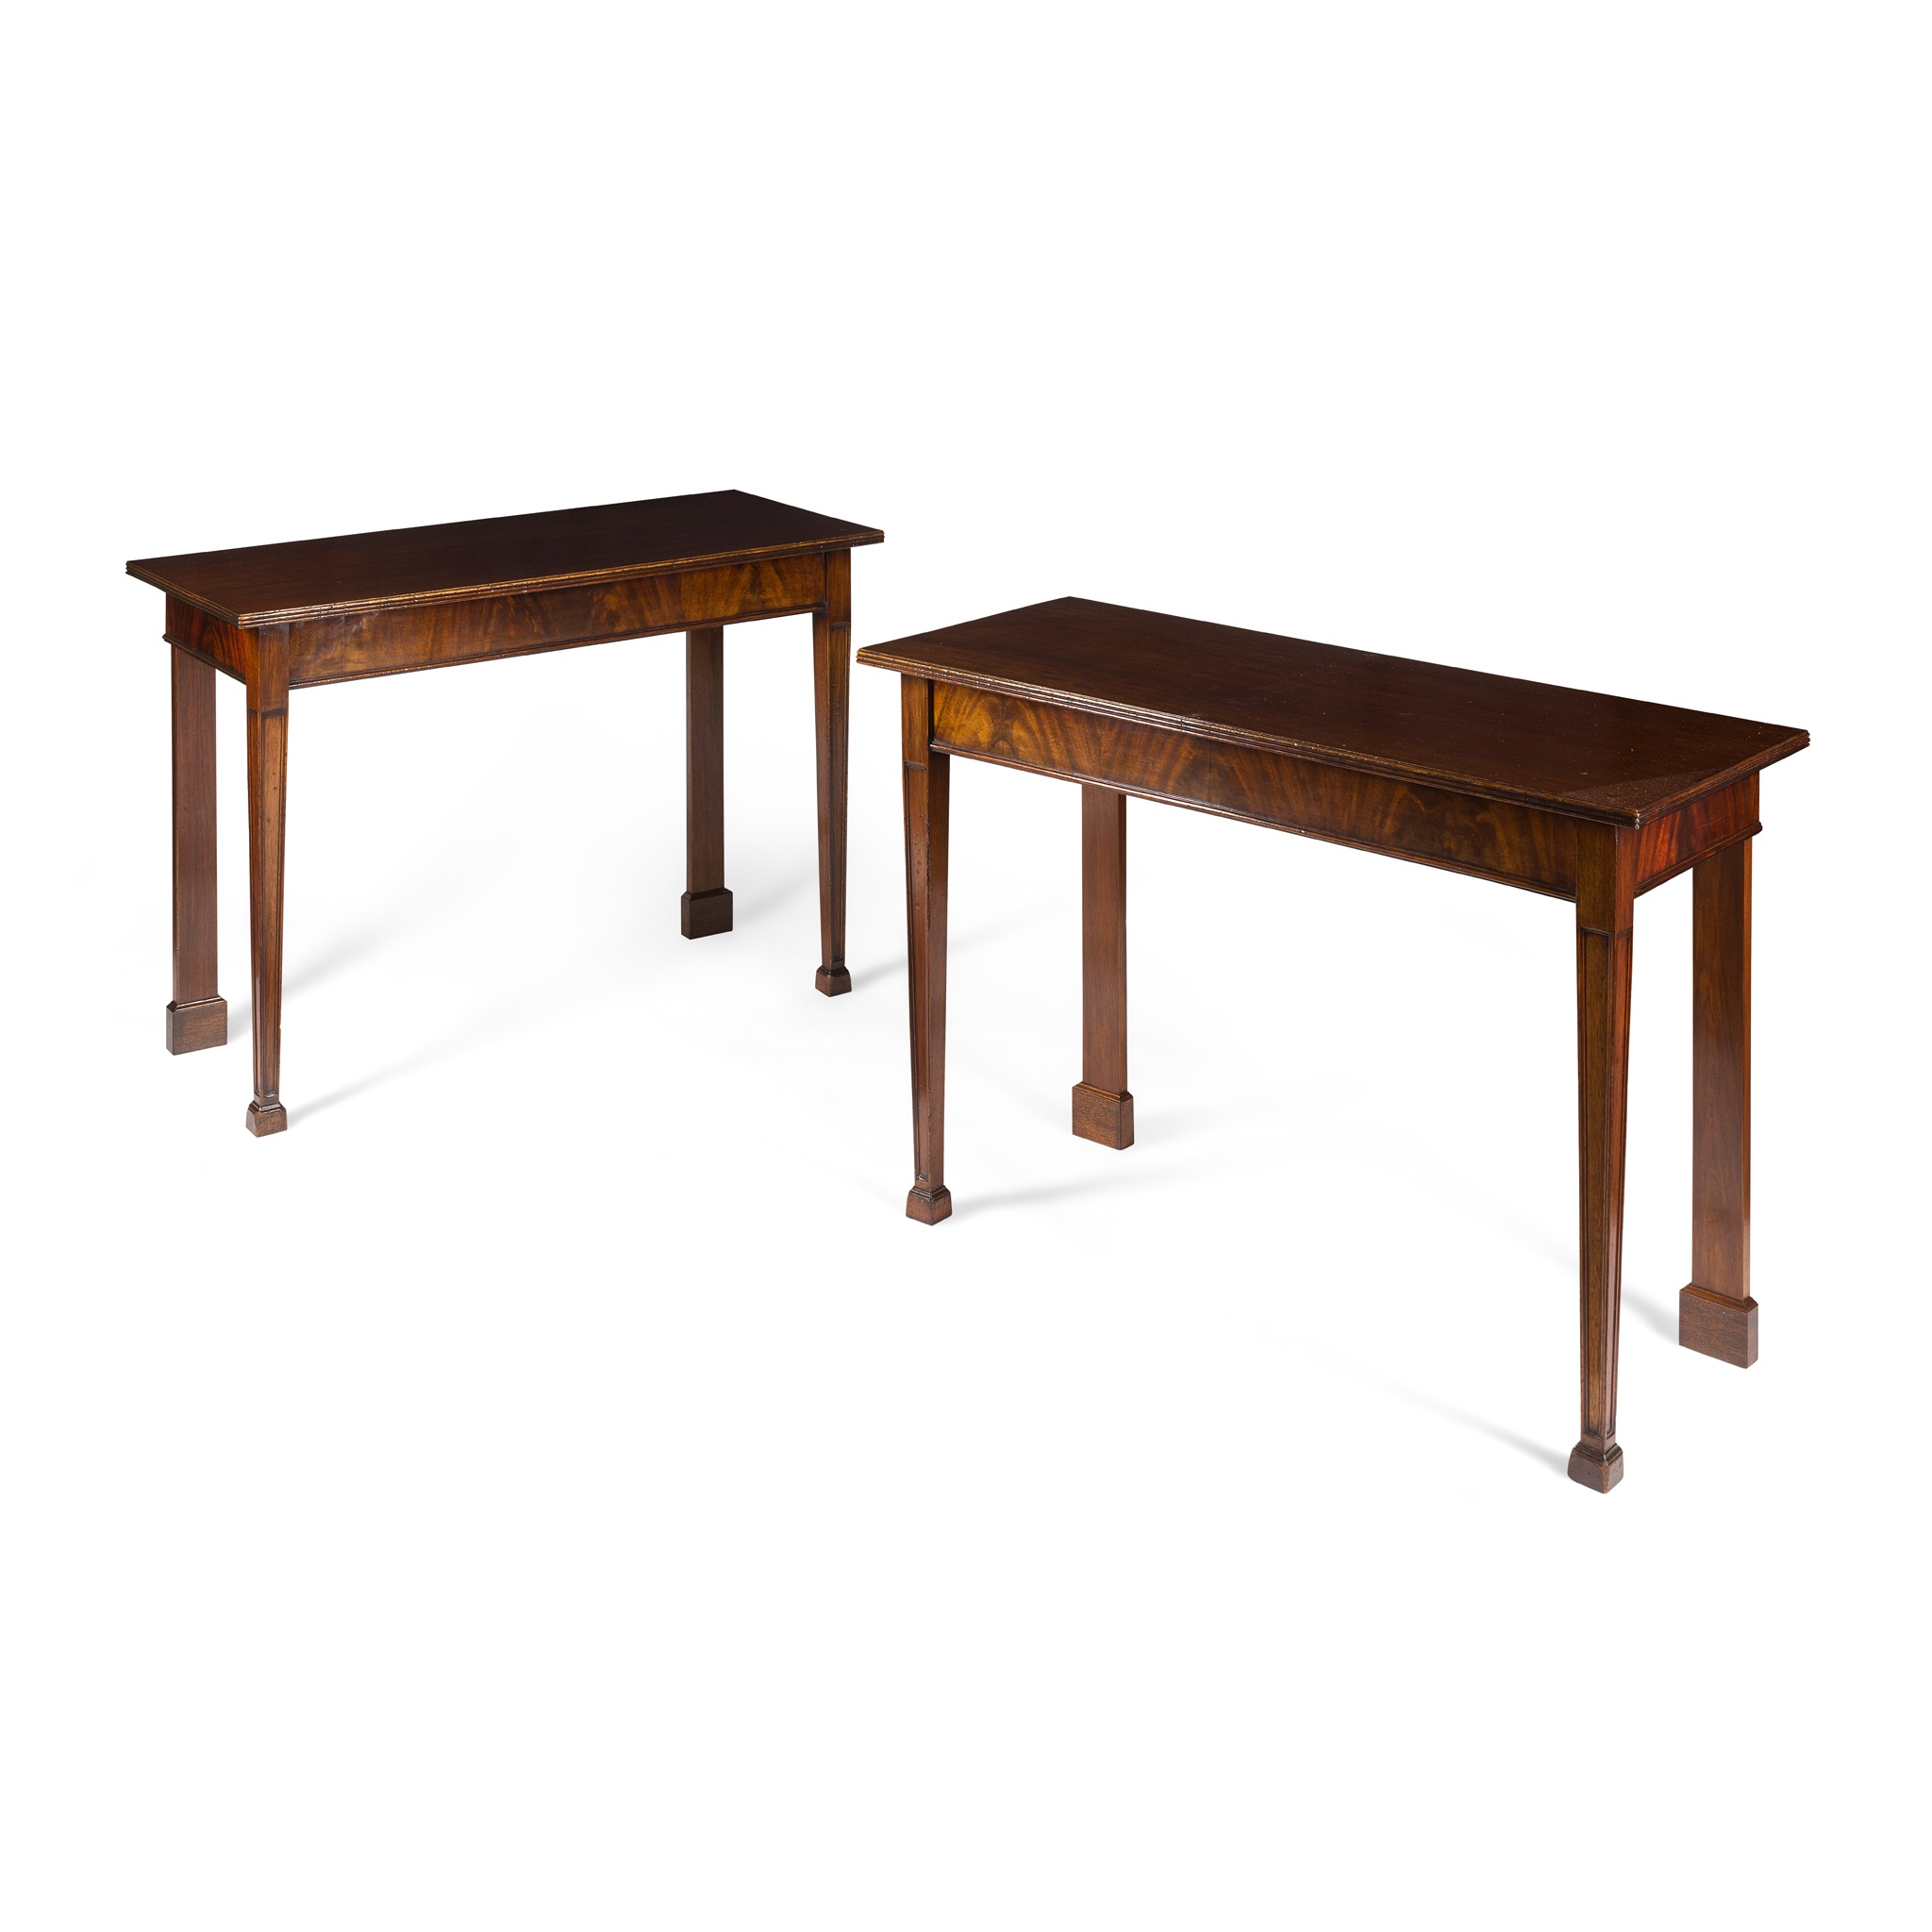 PAIR OF GEORGIAN STYLE MAHOGANY HALL TABLES 19TH CENTURY, LATER ADAPTED